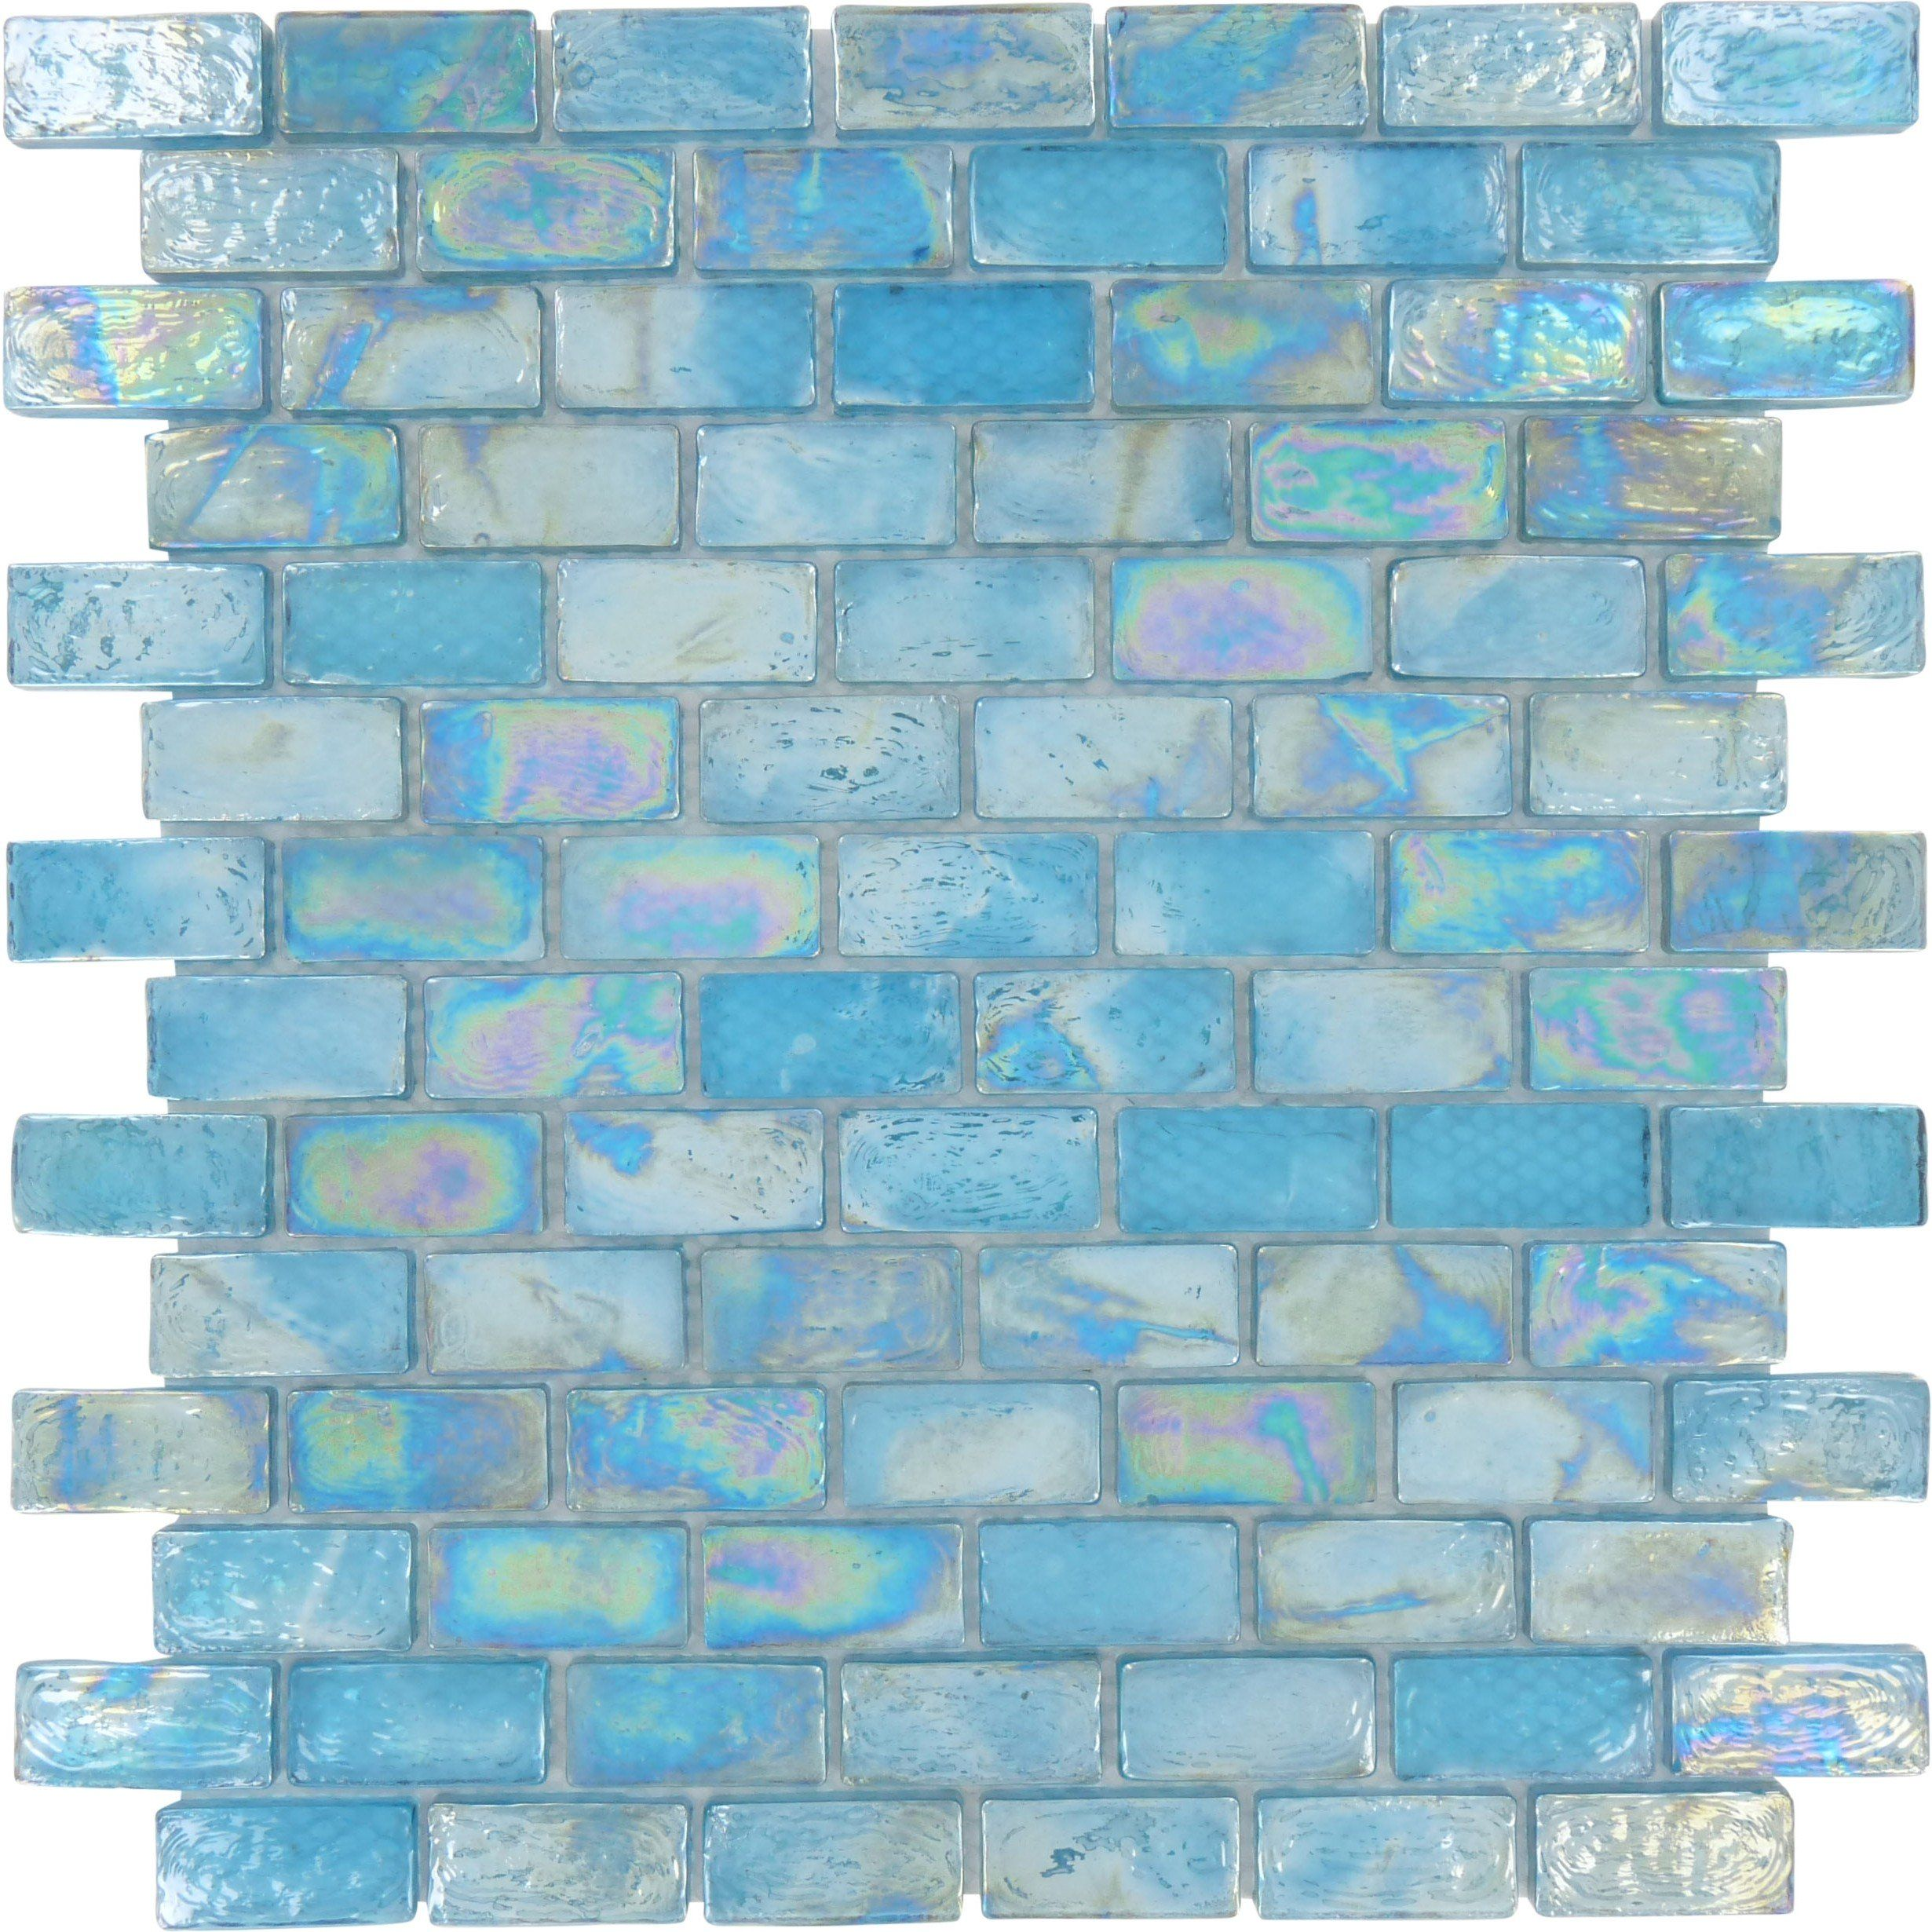 Sheet Size 12 X 12 Tile Size 3 4 X 1 1 2 Tiles Per Sheet 98 Tile Thickness 1 4 Grout Joints 1 8 She Iridescent Glass Tiles Sea Glass Tile Aqua Tiles